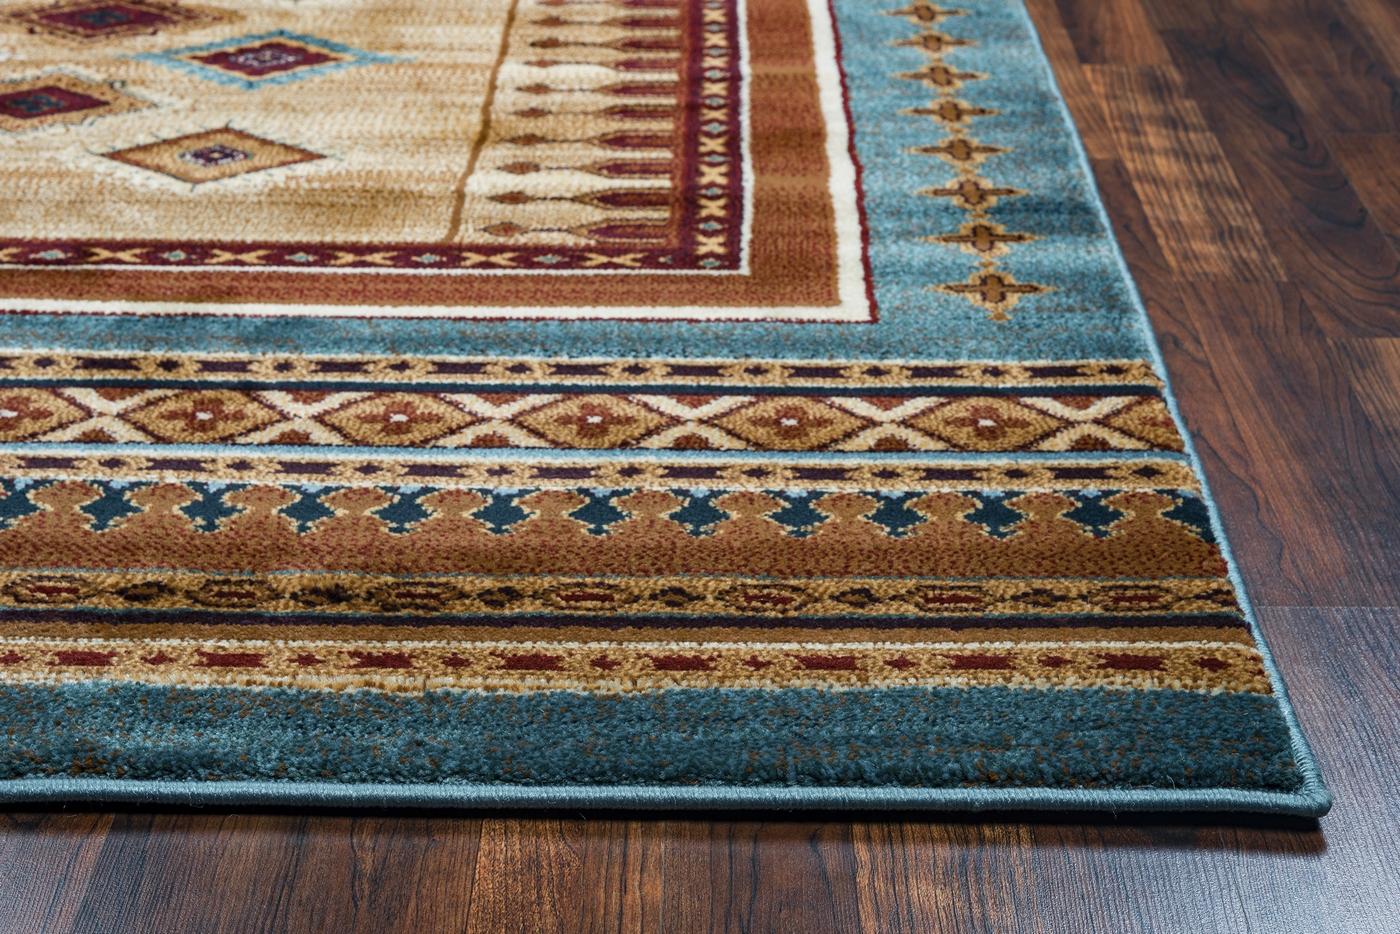 Bellevue Southwest Diamond Area Rug In Tan Blue Burgundy